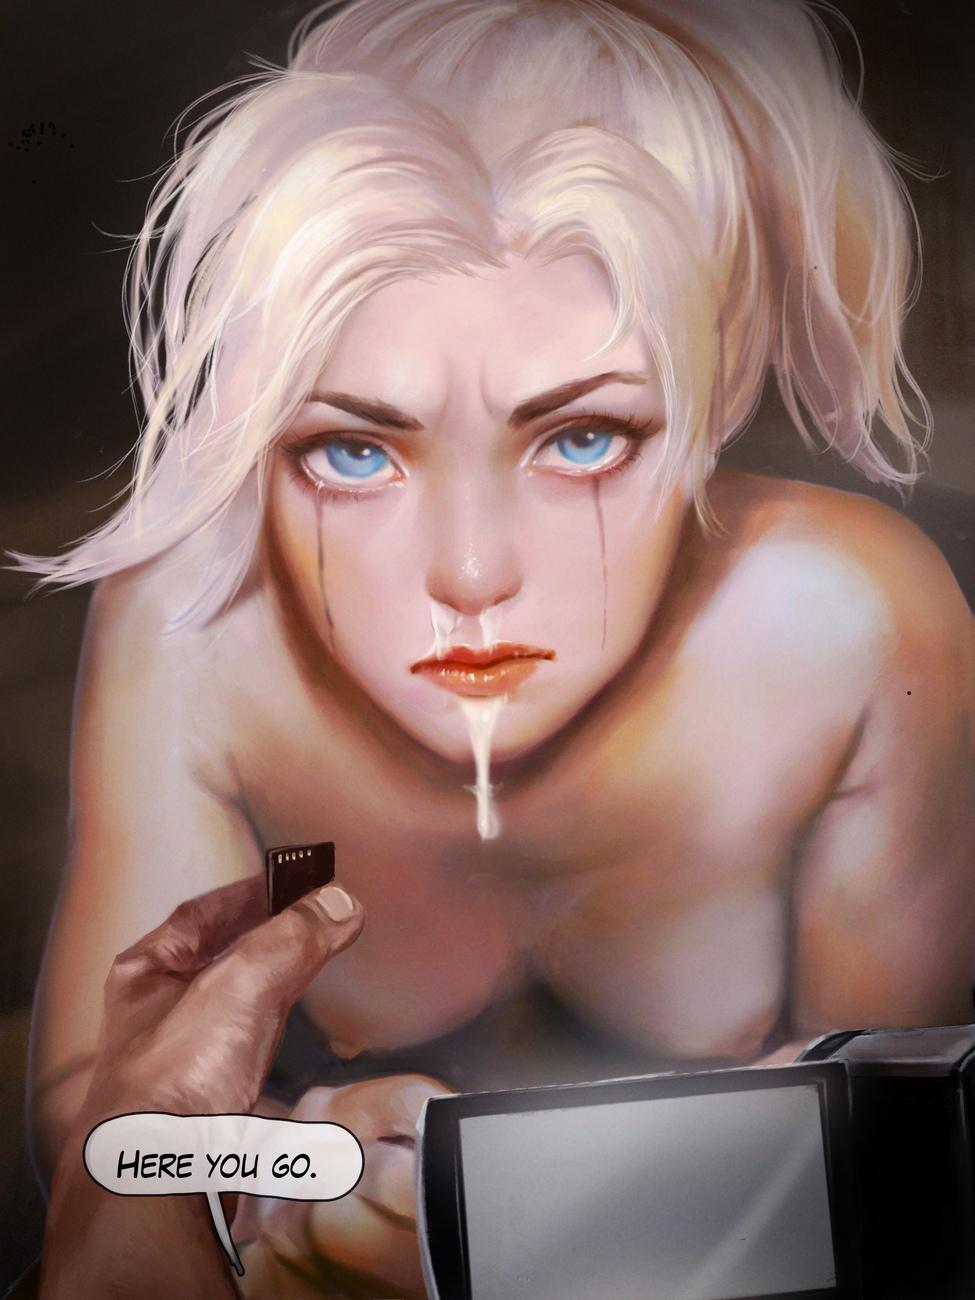 Mercy-The-First-Audition 52 free sex comic